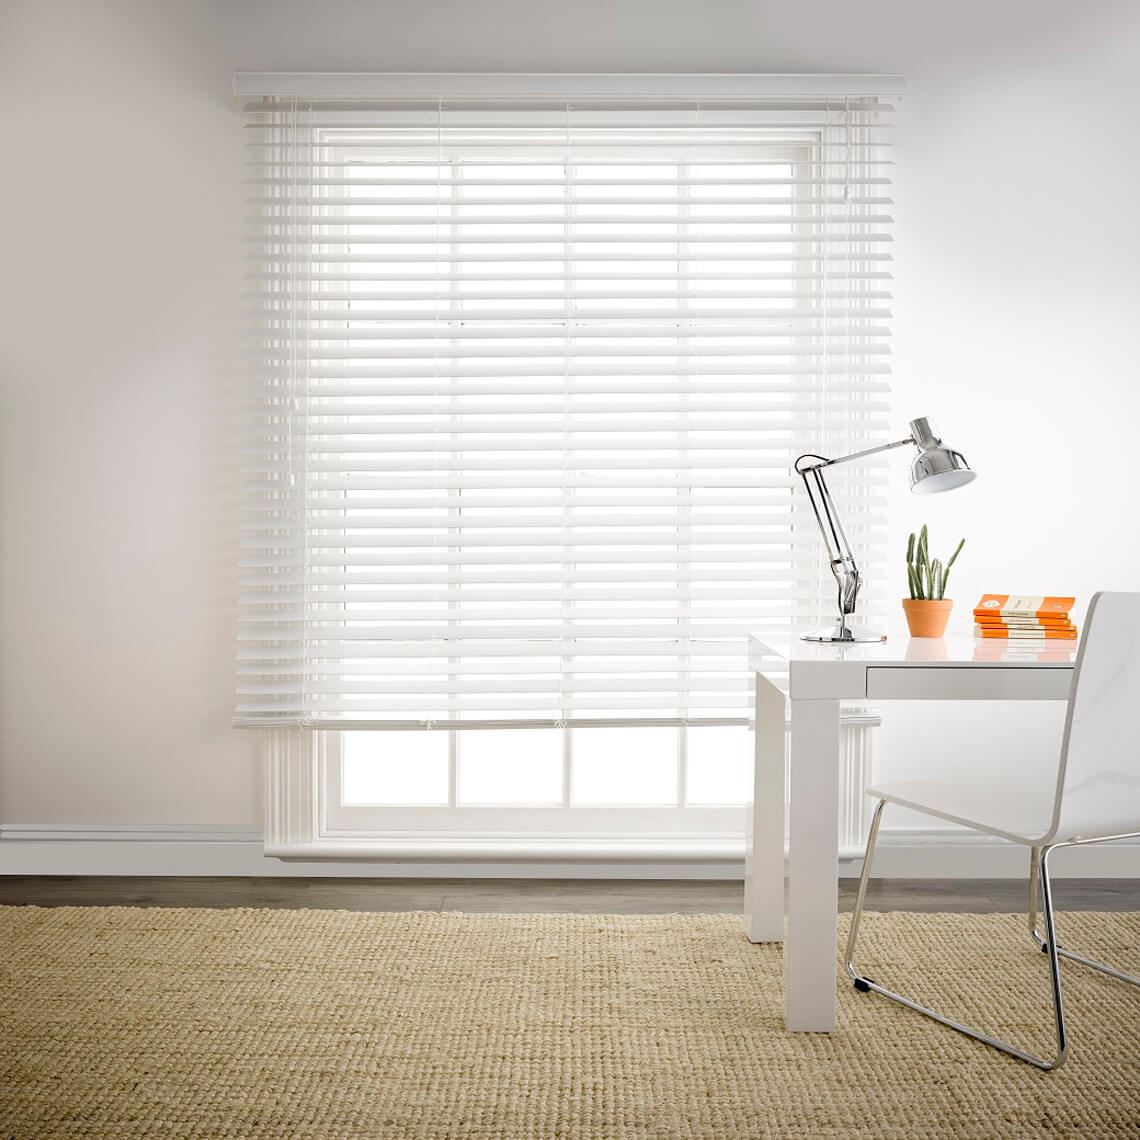 Beaumont Privacy Blind Size W 90cm x D 6cm x H 137cm in White Polyvinyl chloride Freedom by Freedom, a Curtains for sale on Style Sourcebook